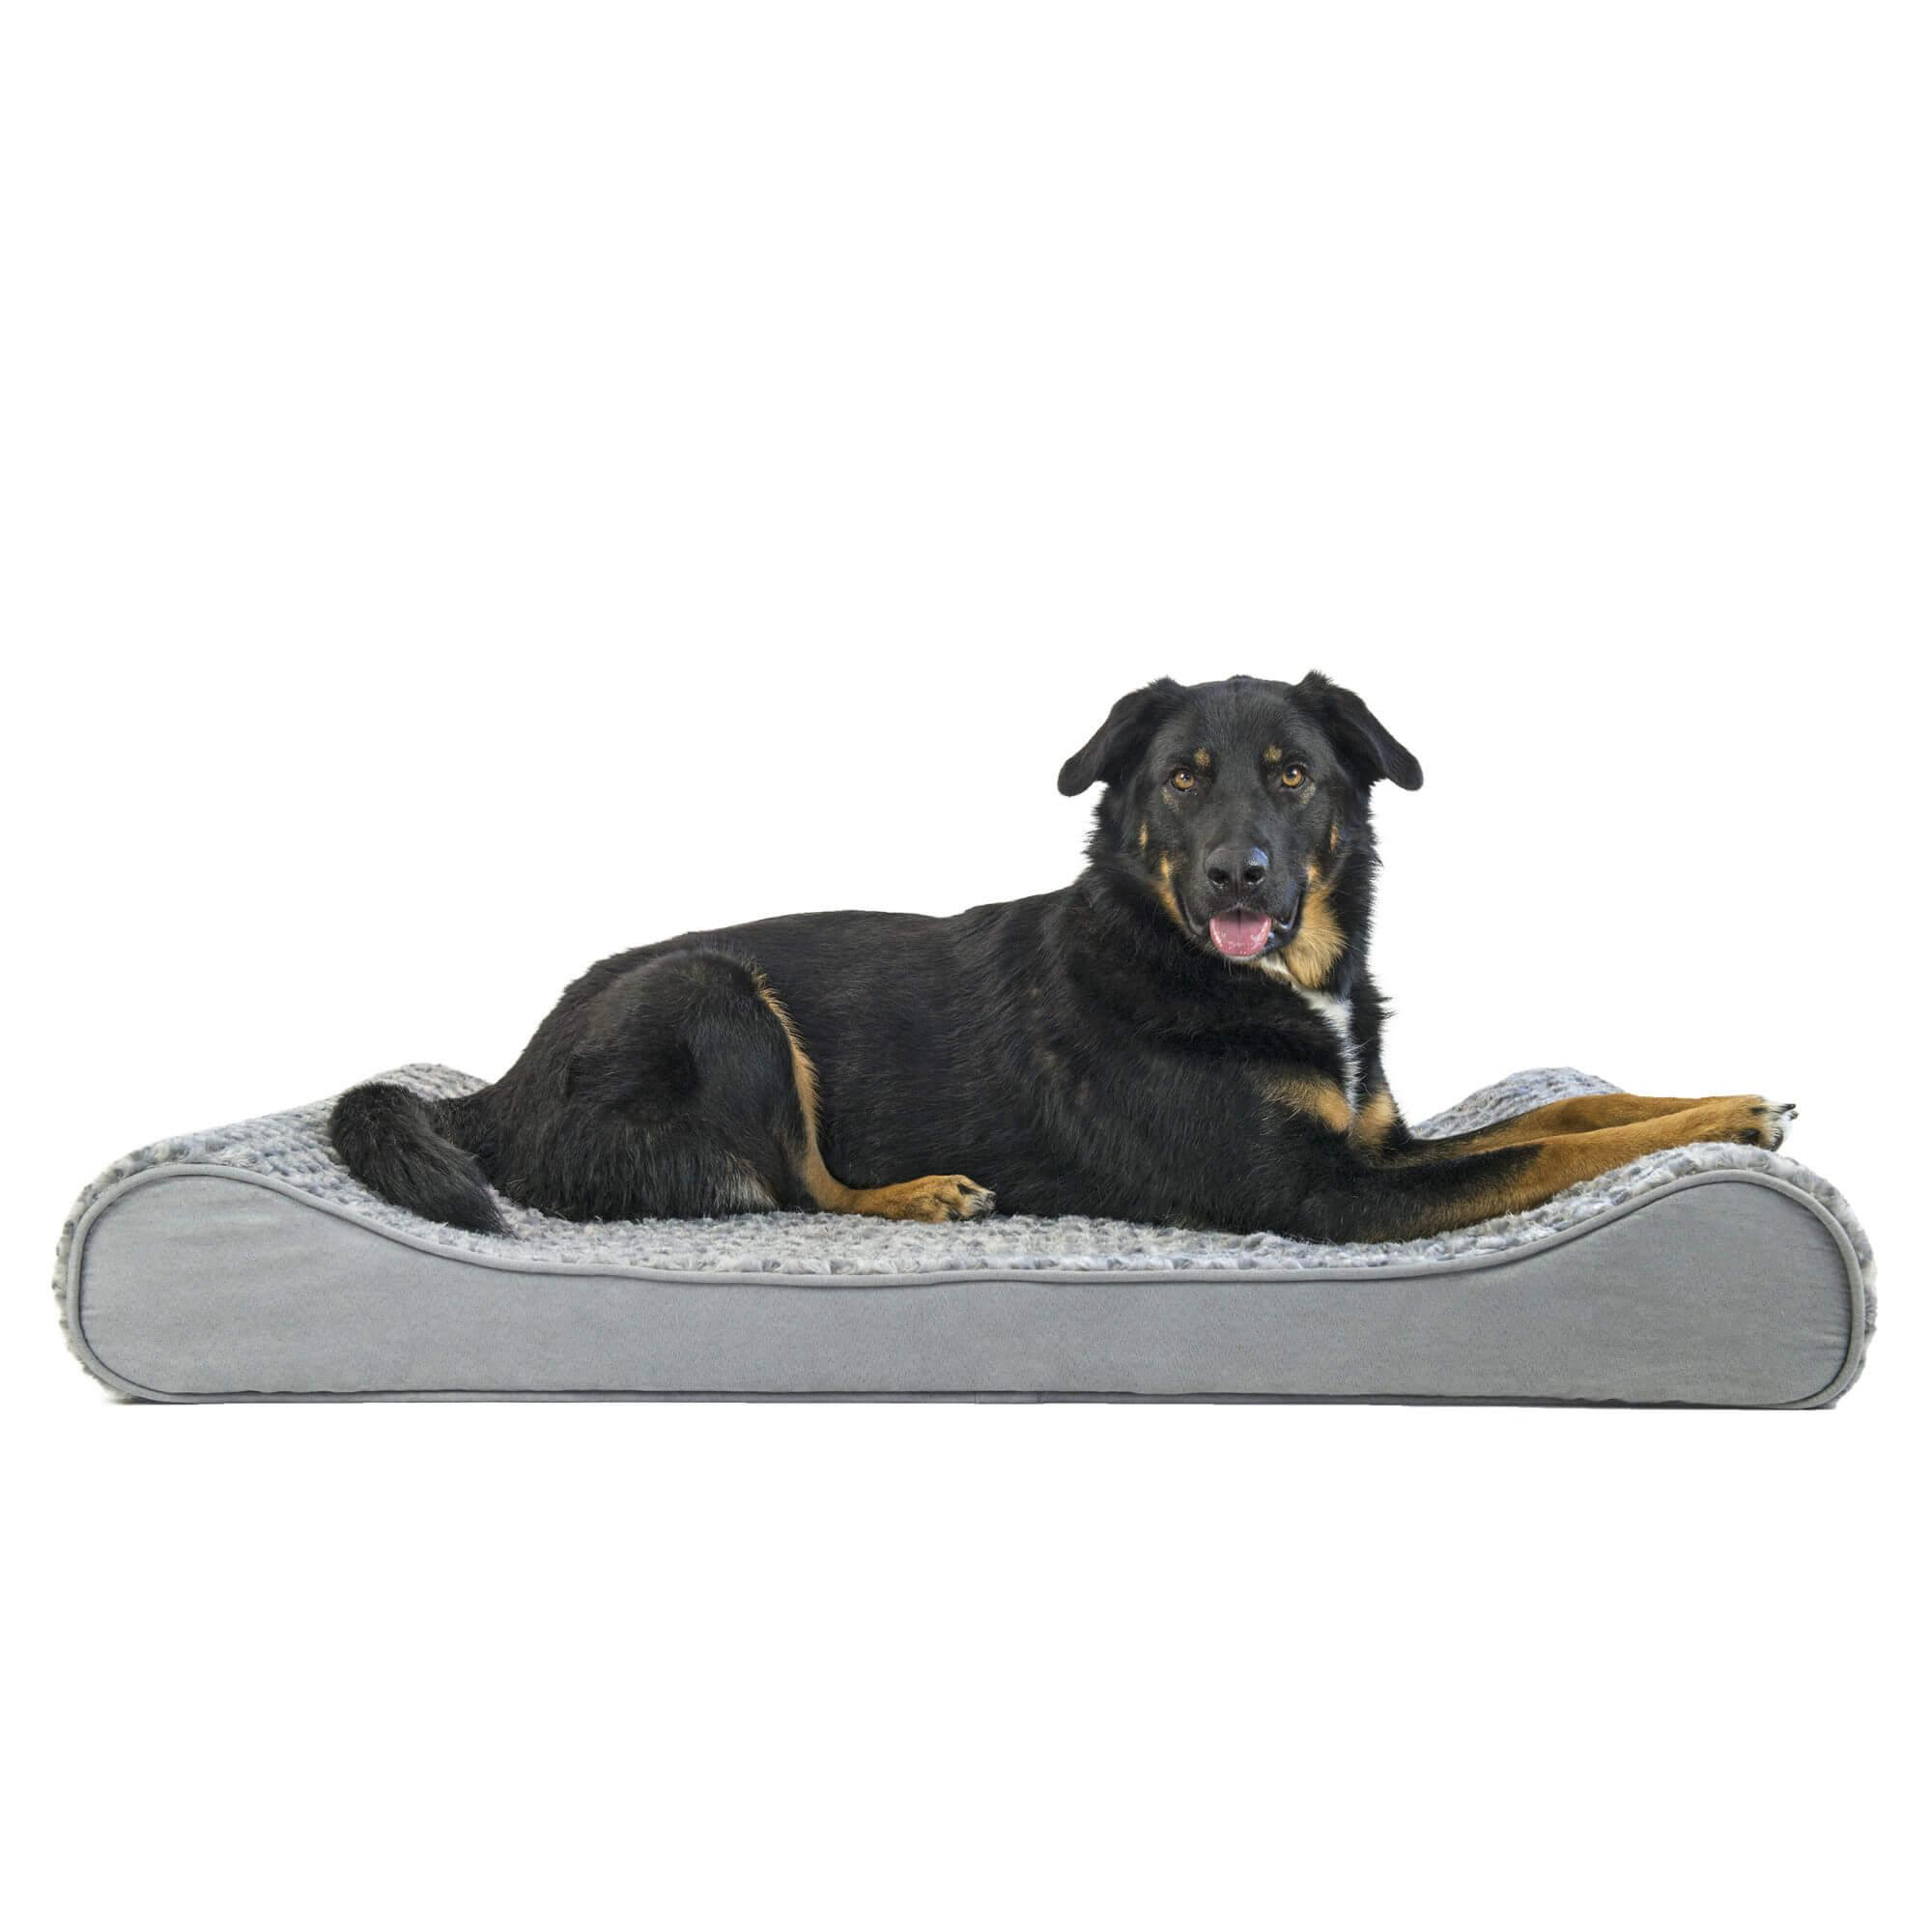 Ultra Plush Luxe Lounger Orthopedic Dog Bed - Gray